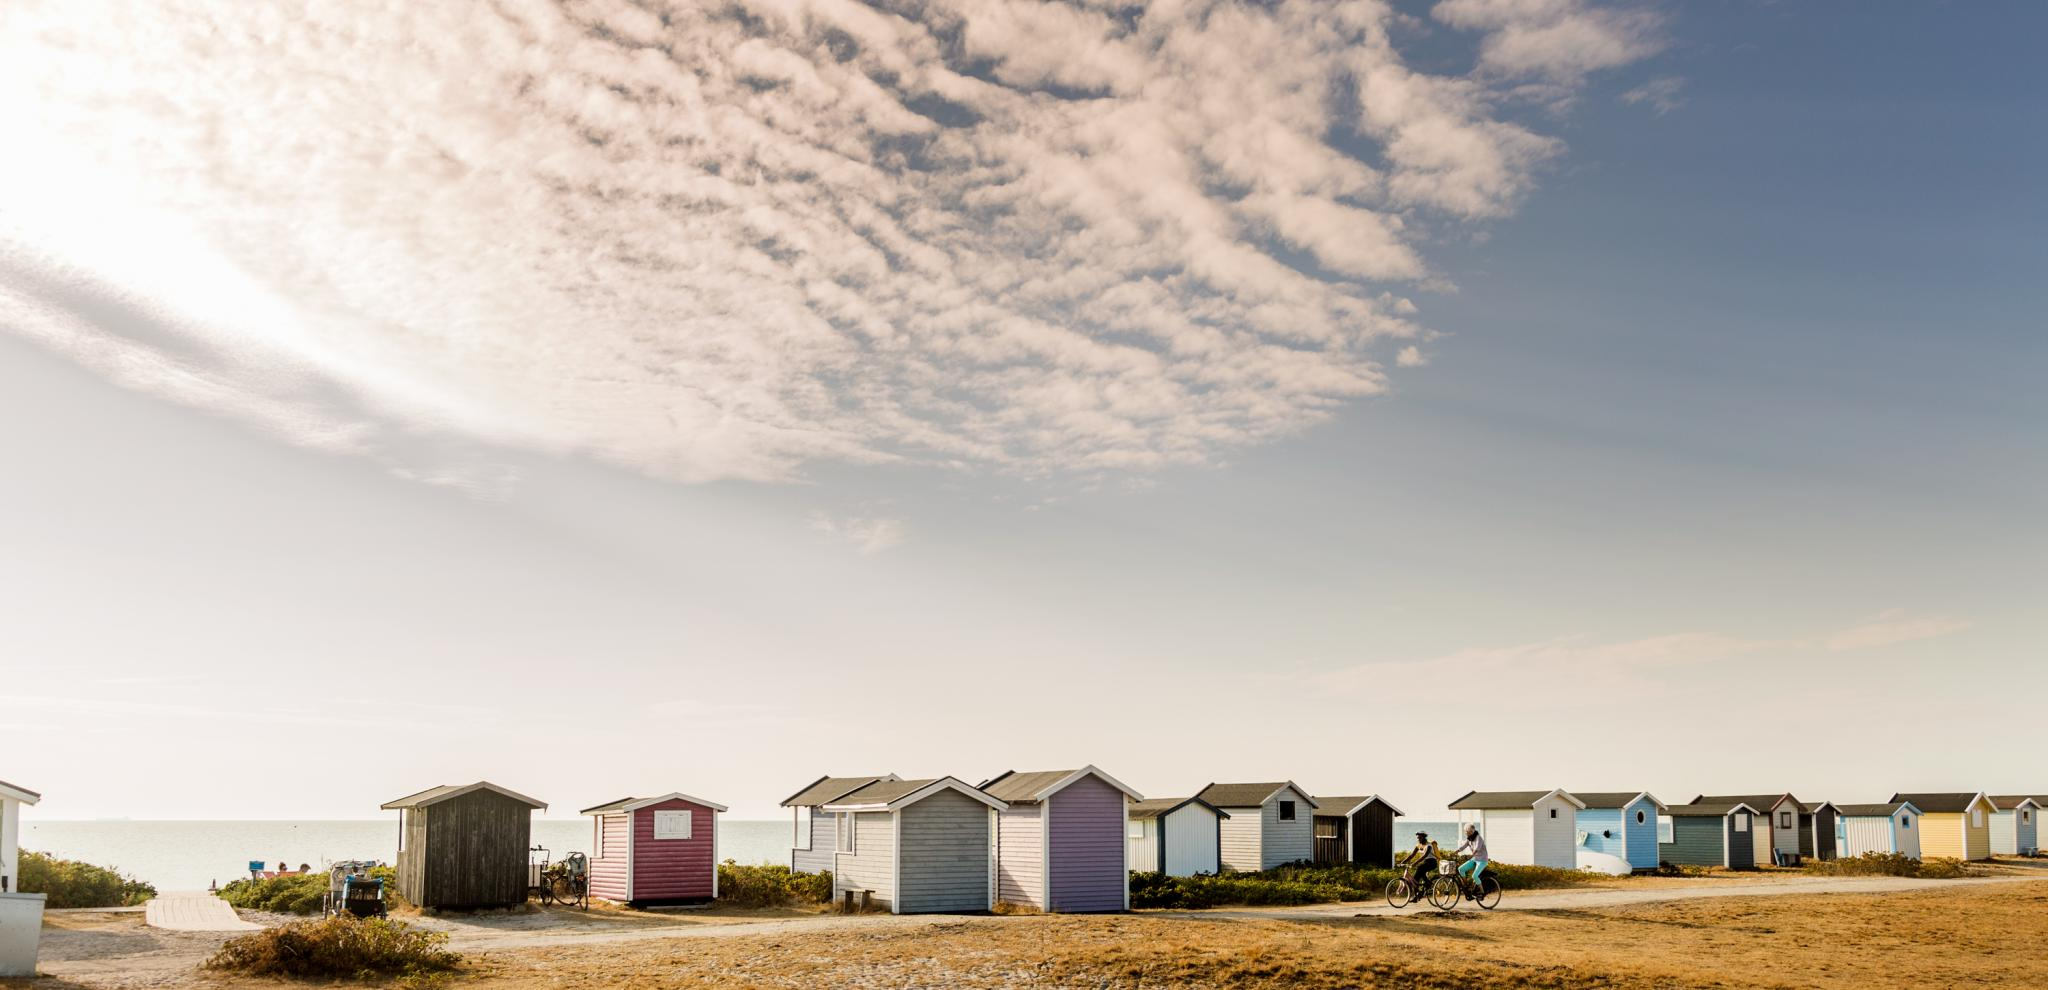 Bathing huts by the coastline on a sunny day